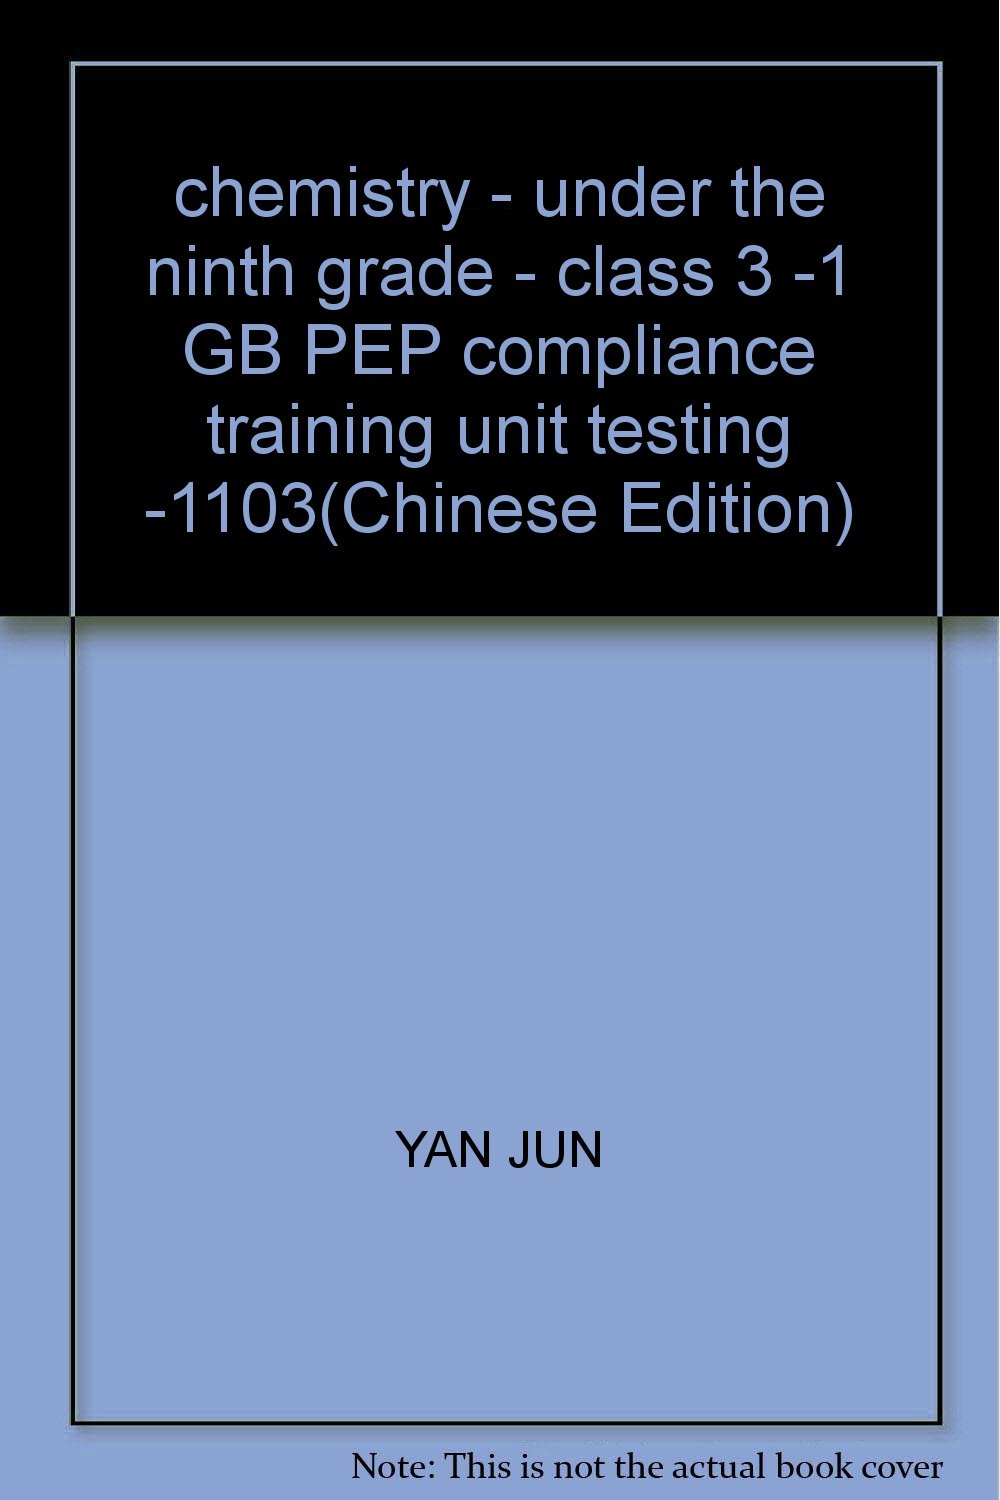 Download chemistry - under the ninth grade - class 3 -1 GB PEP compliance training unit testing -1103 ebook